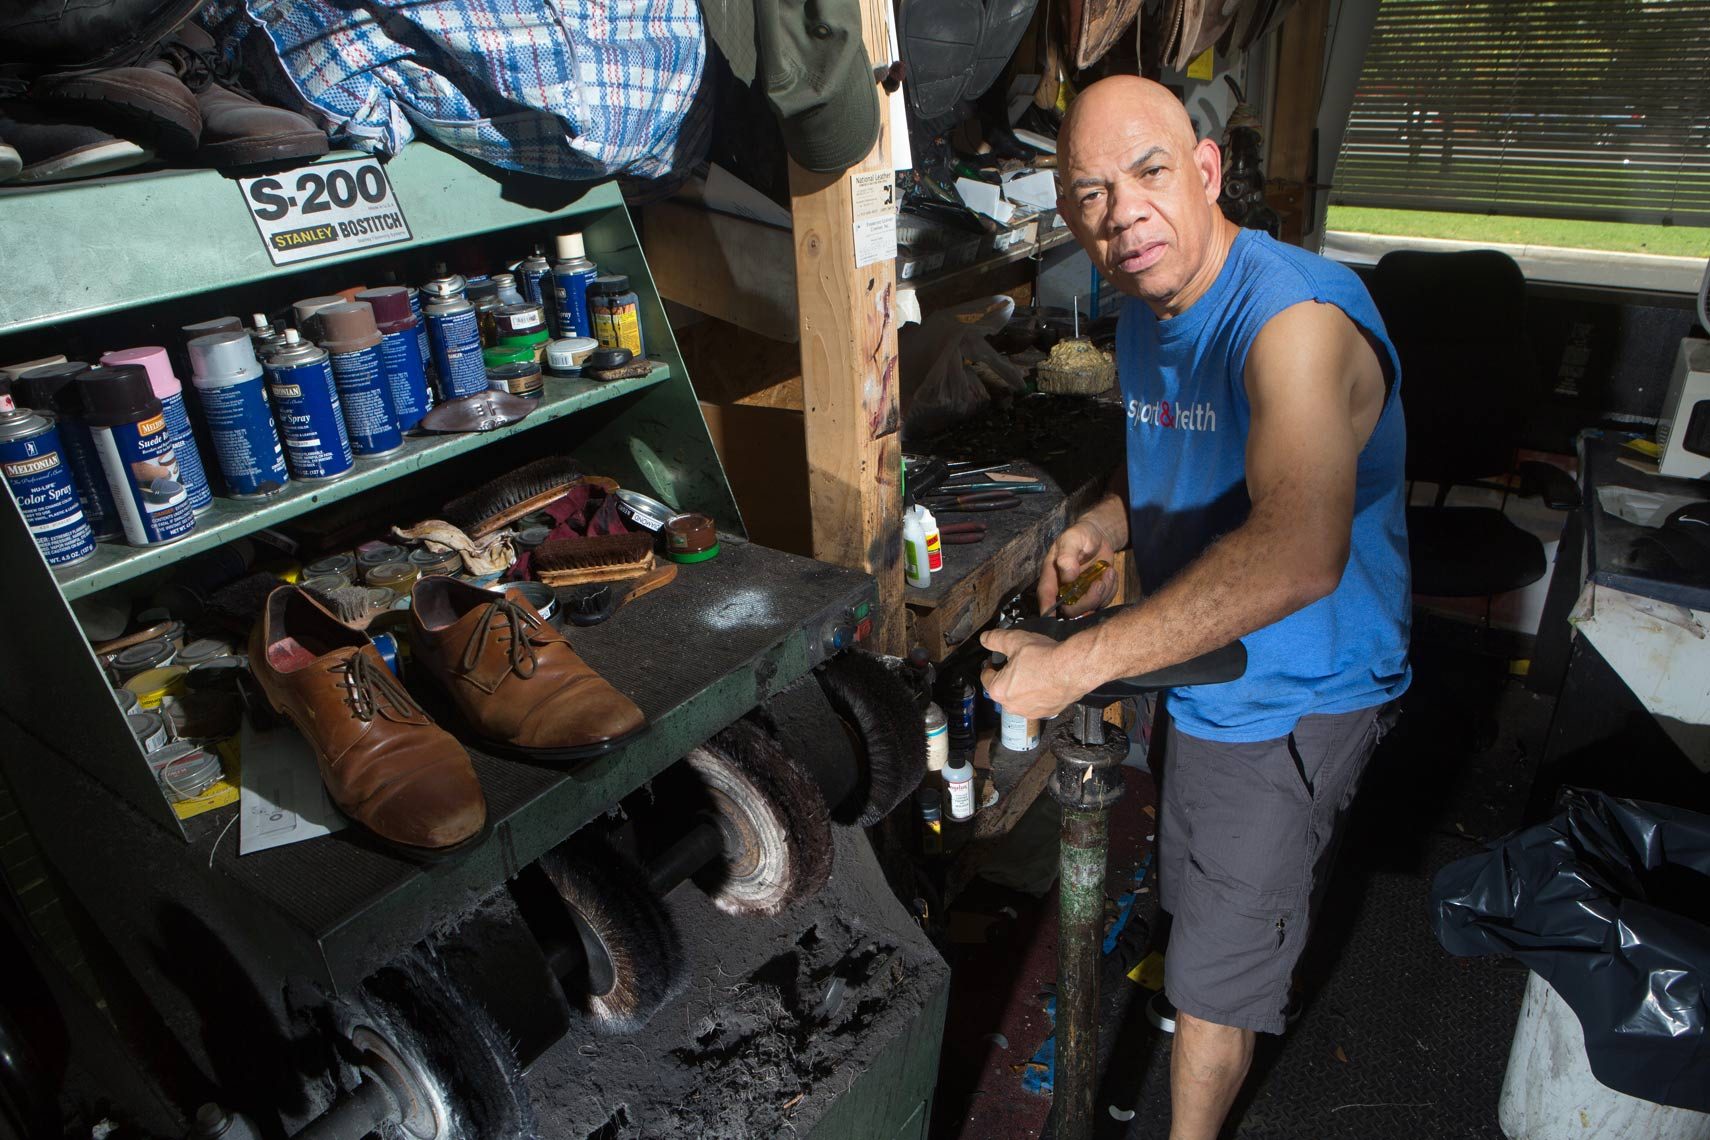 EASTERN MARKET SHOE REPAIR